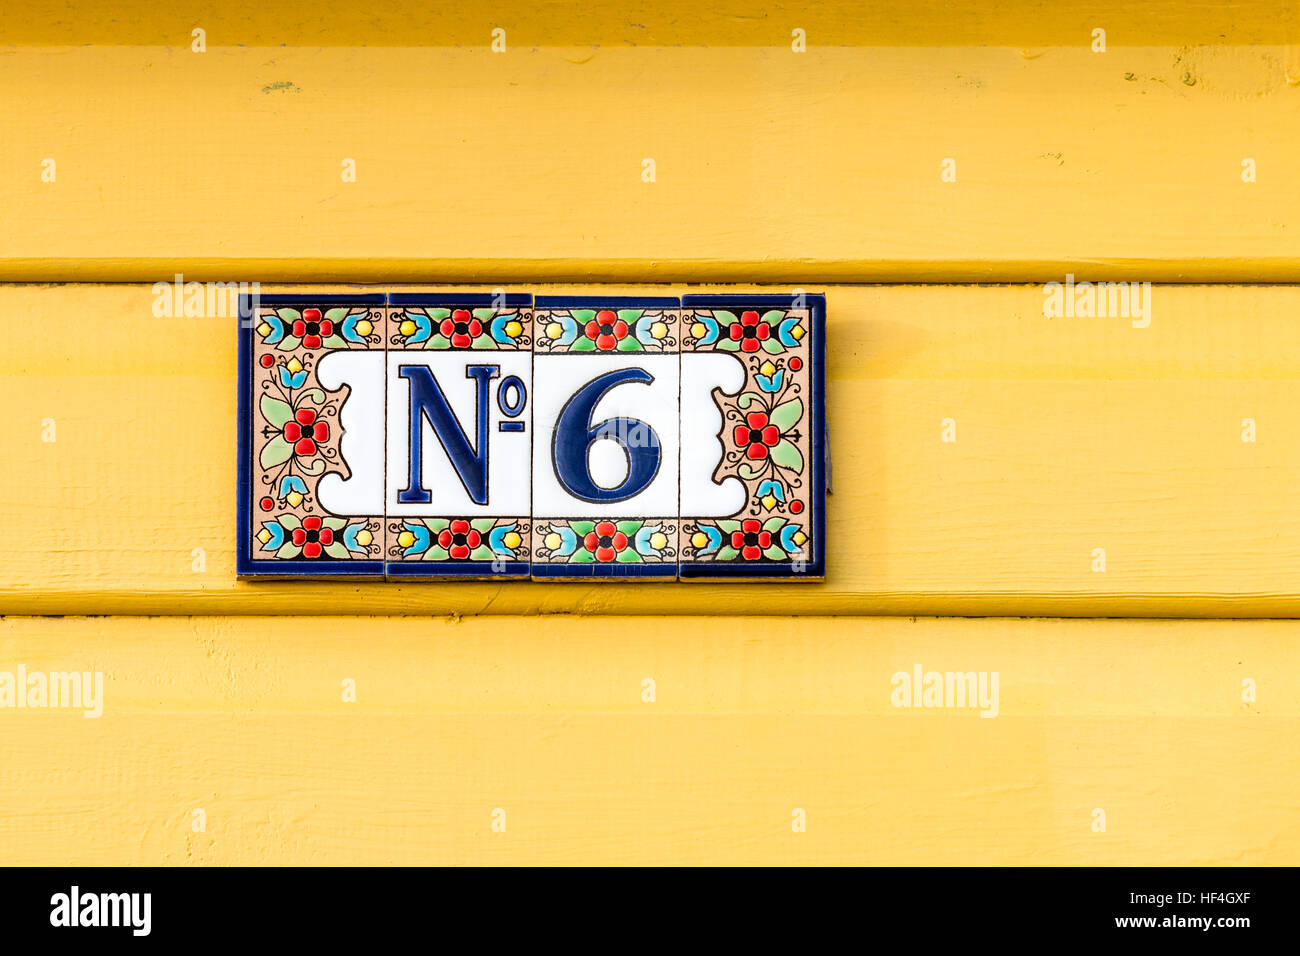 England, Whitstable. Number 6 plate with flower border on four tiles stuck on painted yellow boards. - Stock Image